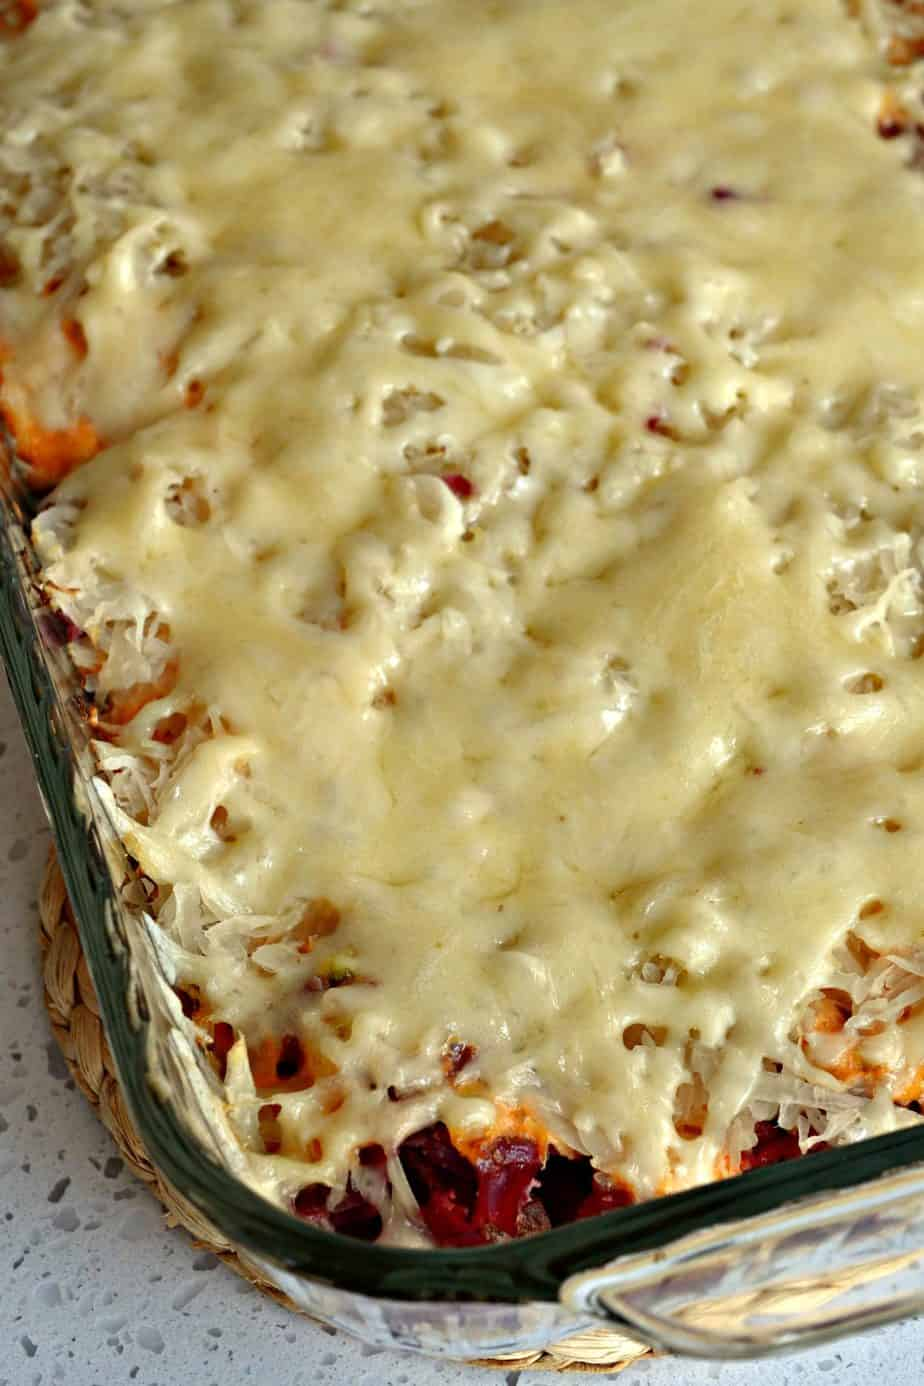 This Reuben Casserole is topped with creamy melted swiss cheese on top of layers of sauerkraut and corned beef